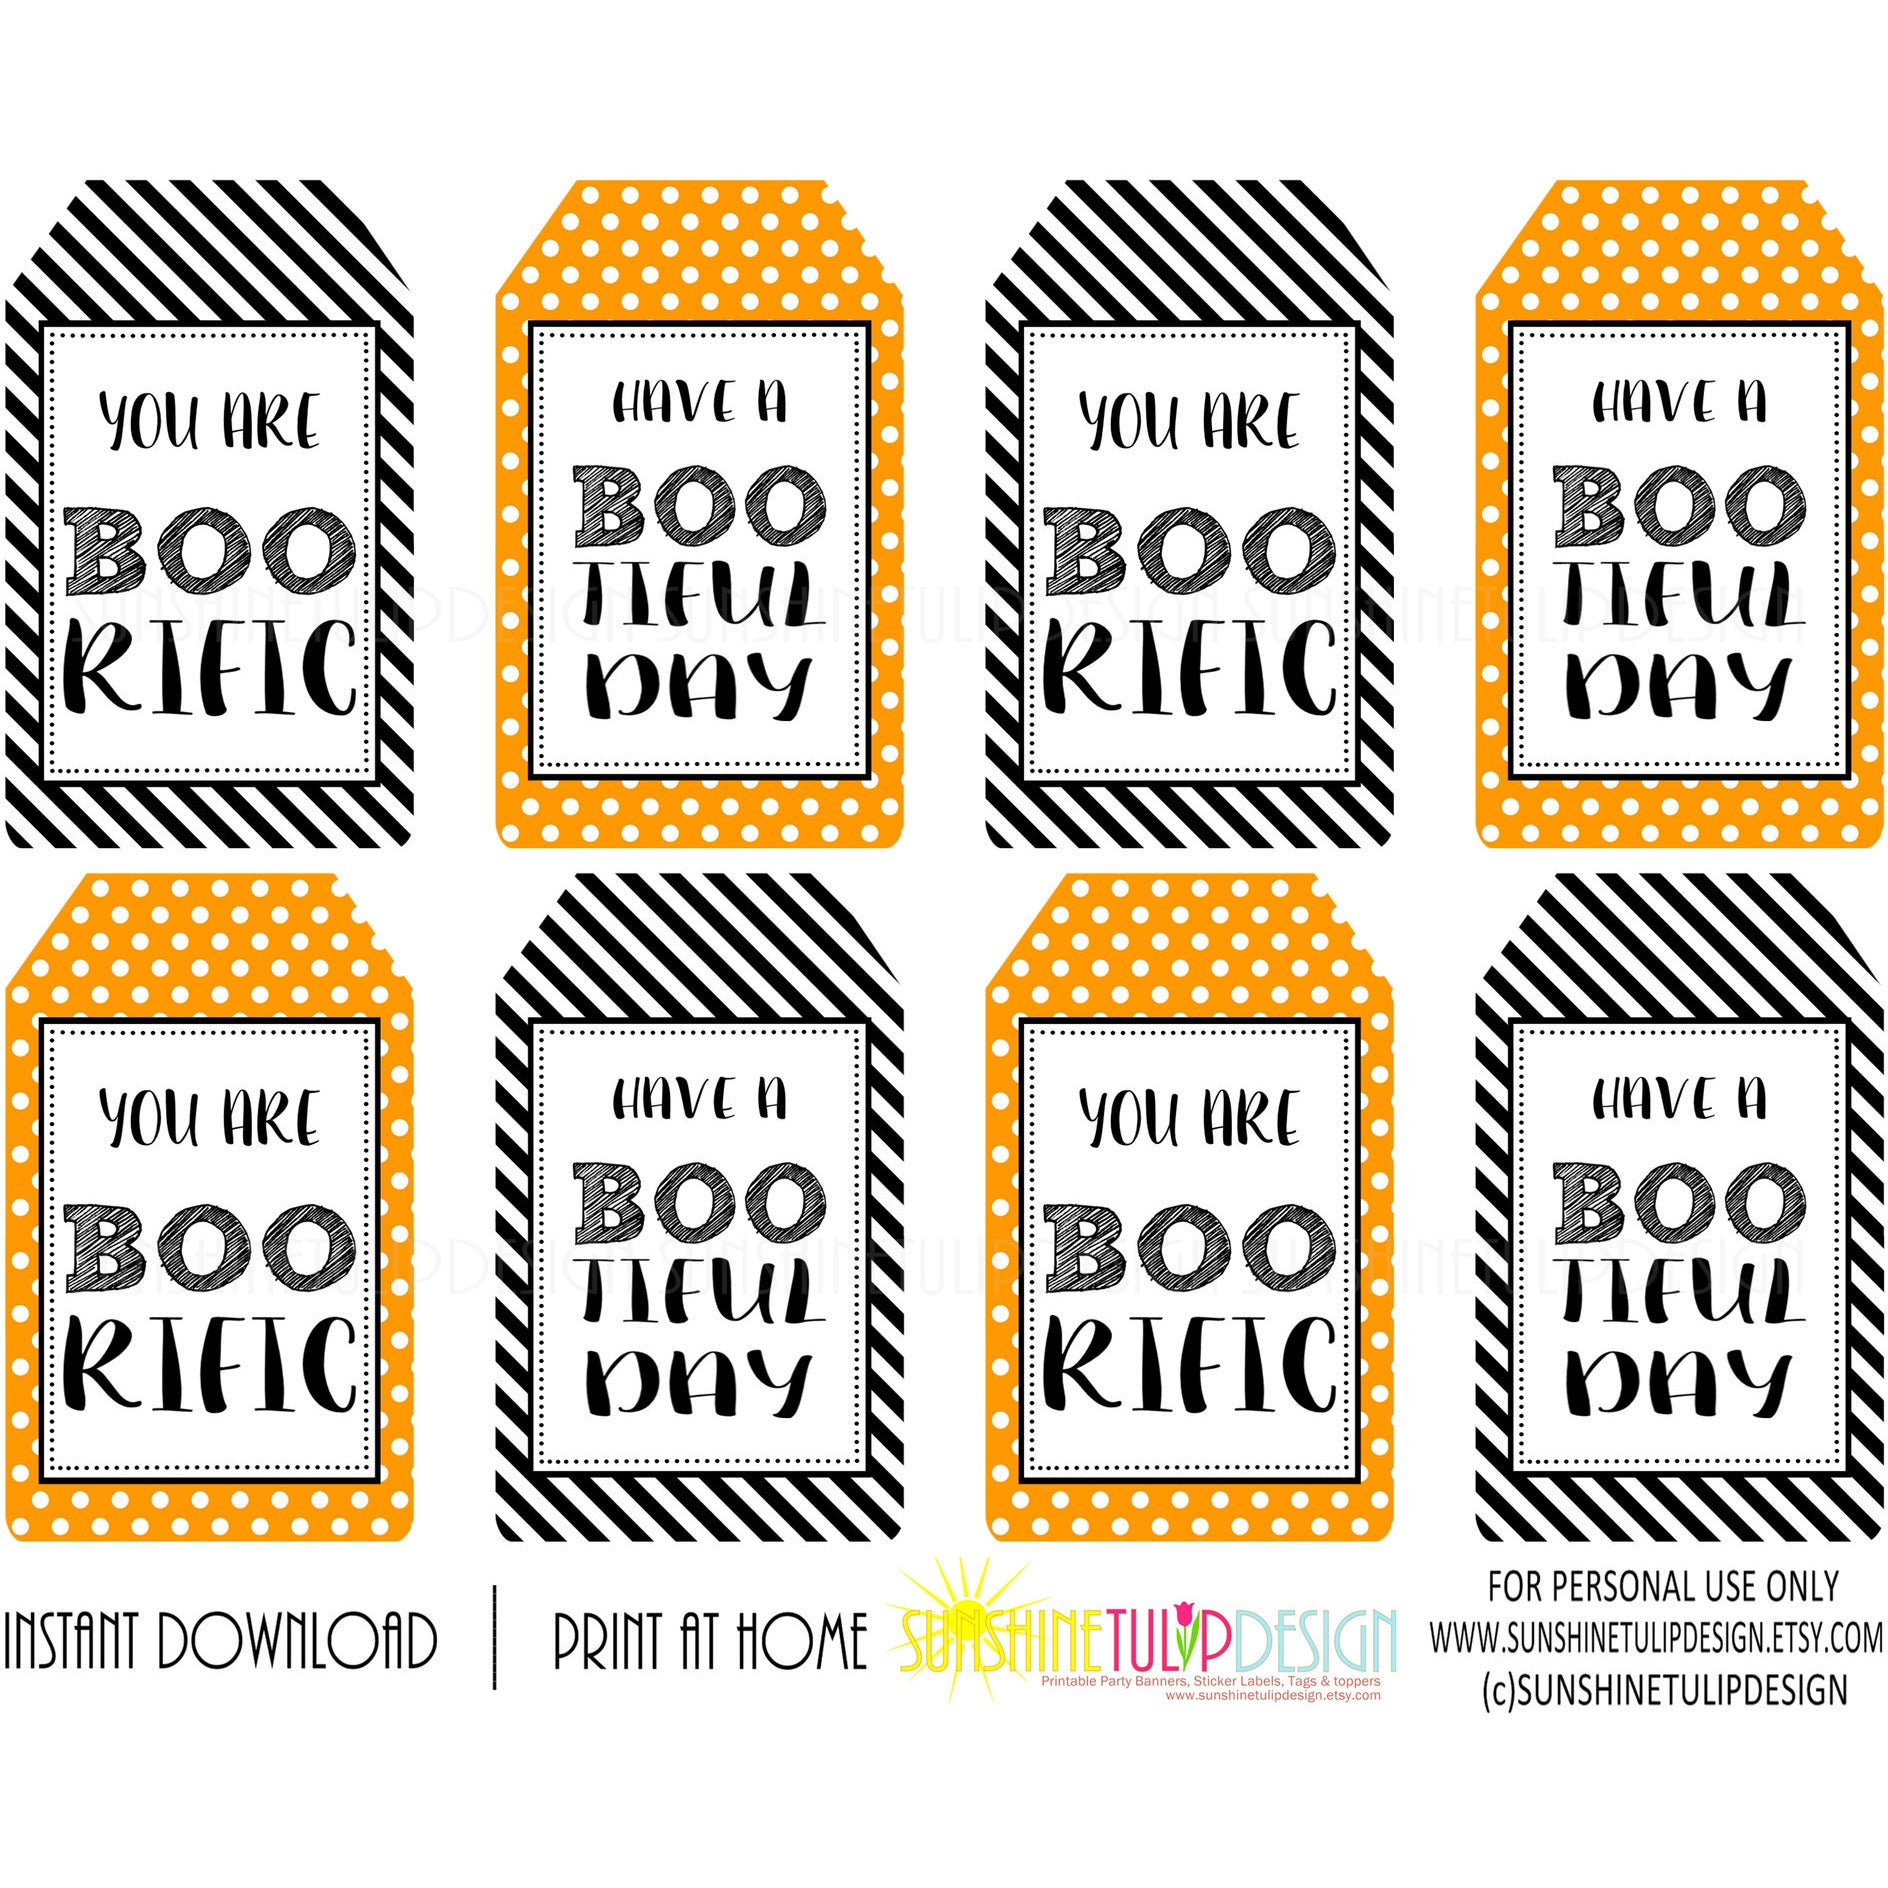 image about Printable Halloween Images identified as Printable Halloween Present Tags, Halloween BOOrific BOOtiful Working day Want Reward Tags by way of Sunshinetulipdesign